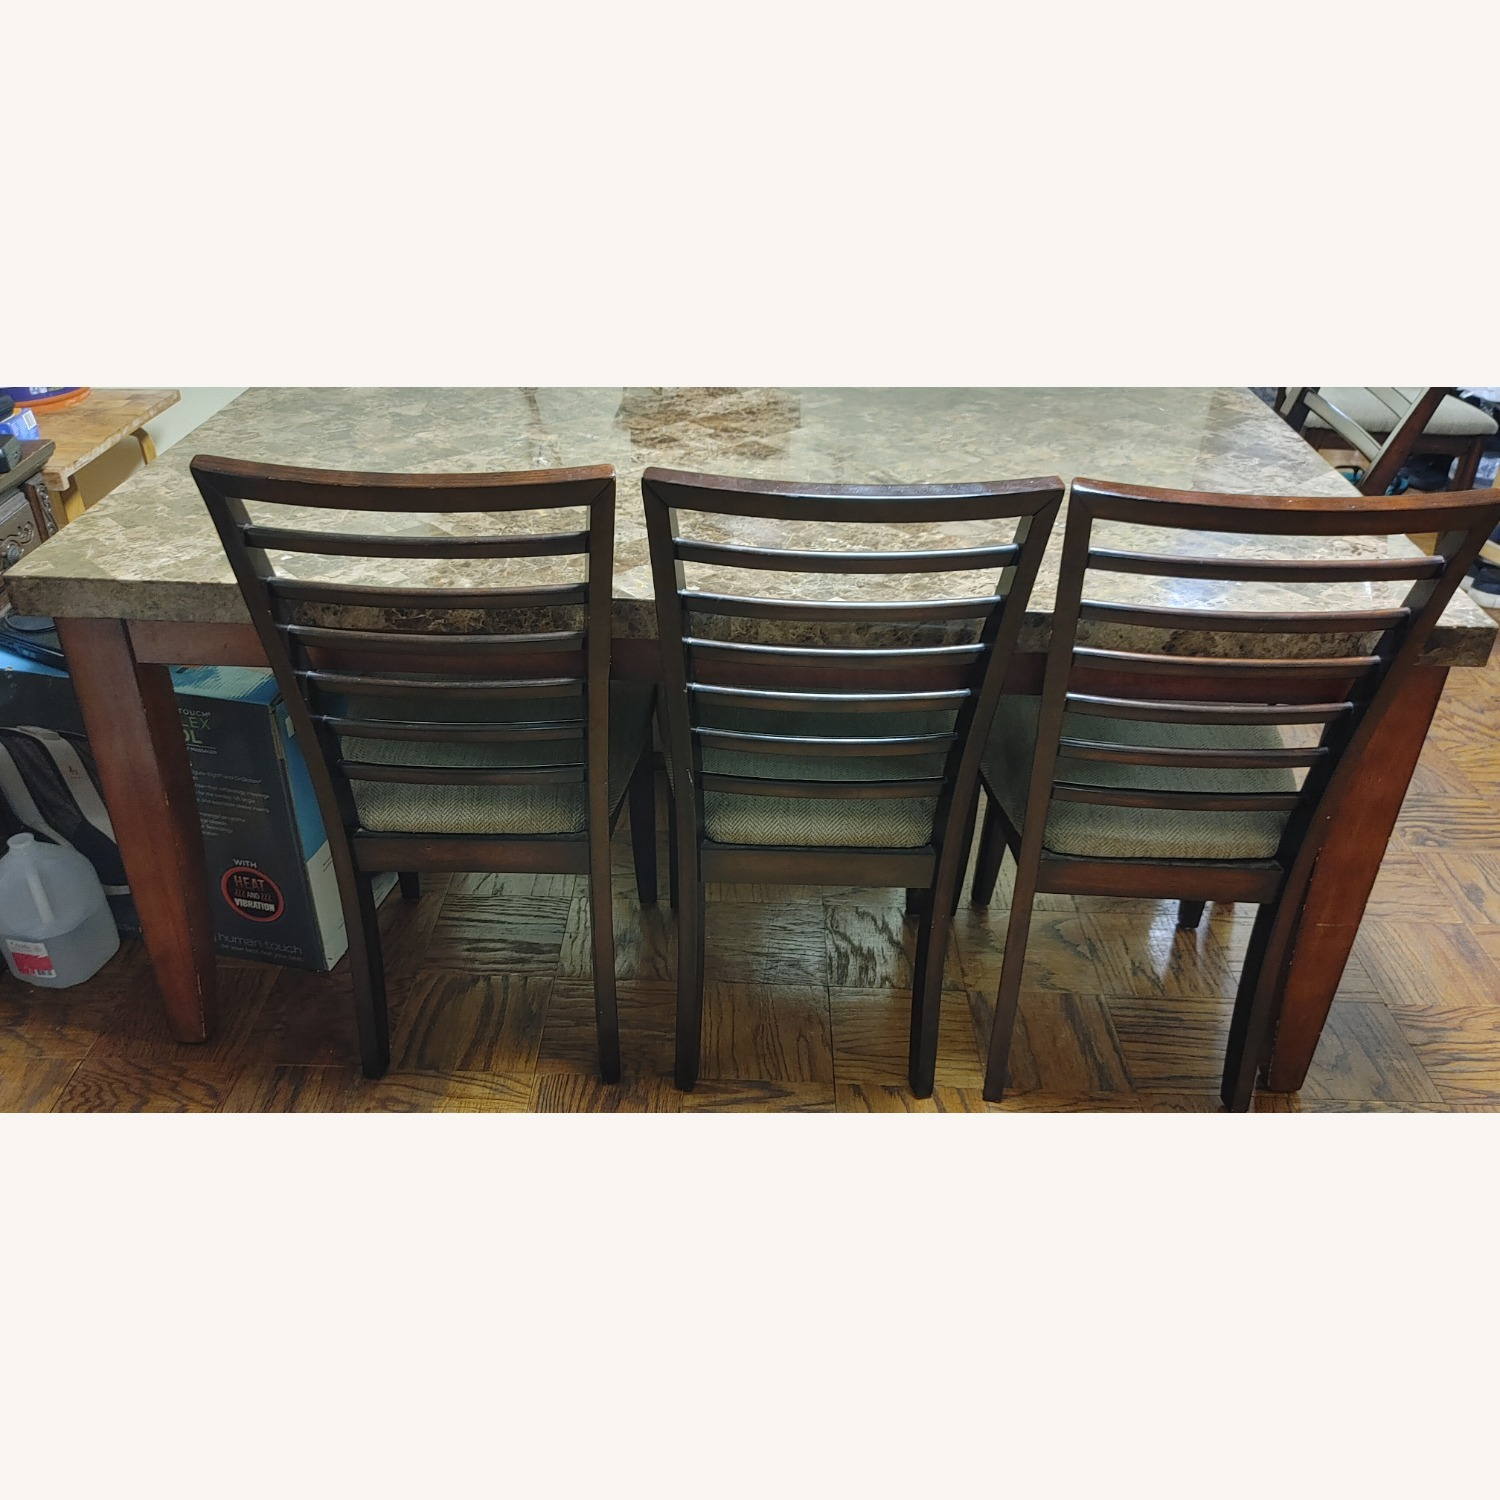 Bob's Discount Rectangular Dining Table with 6 Chair - image-2